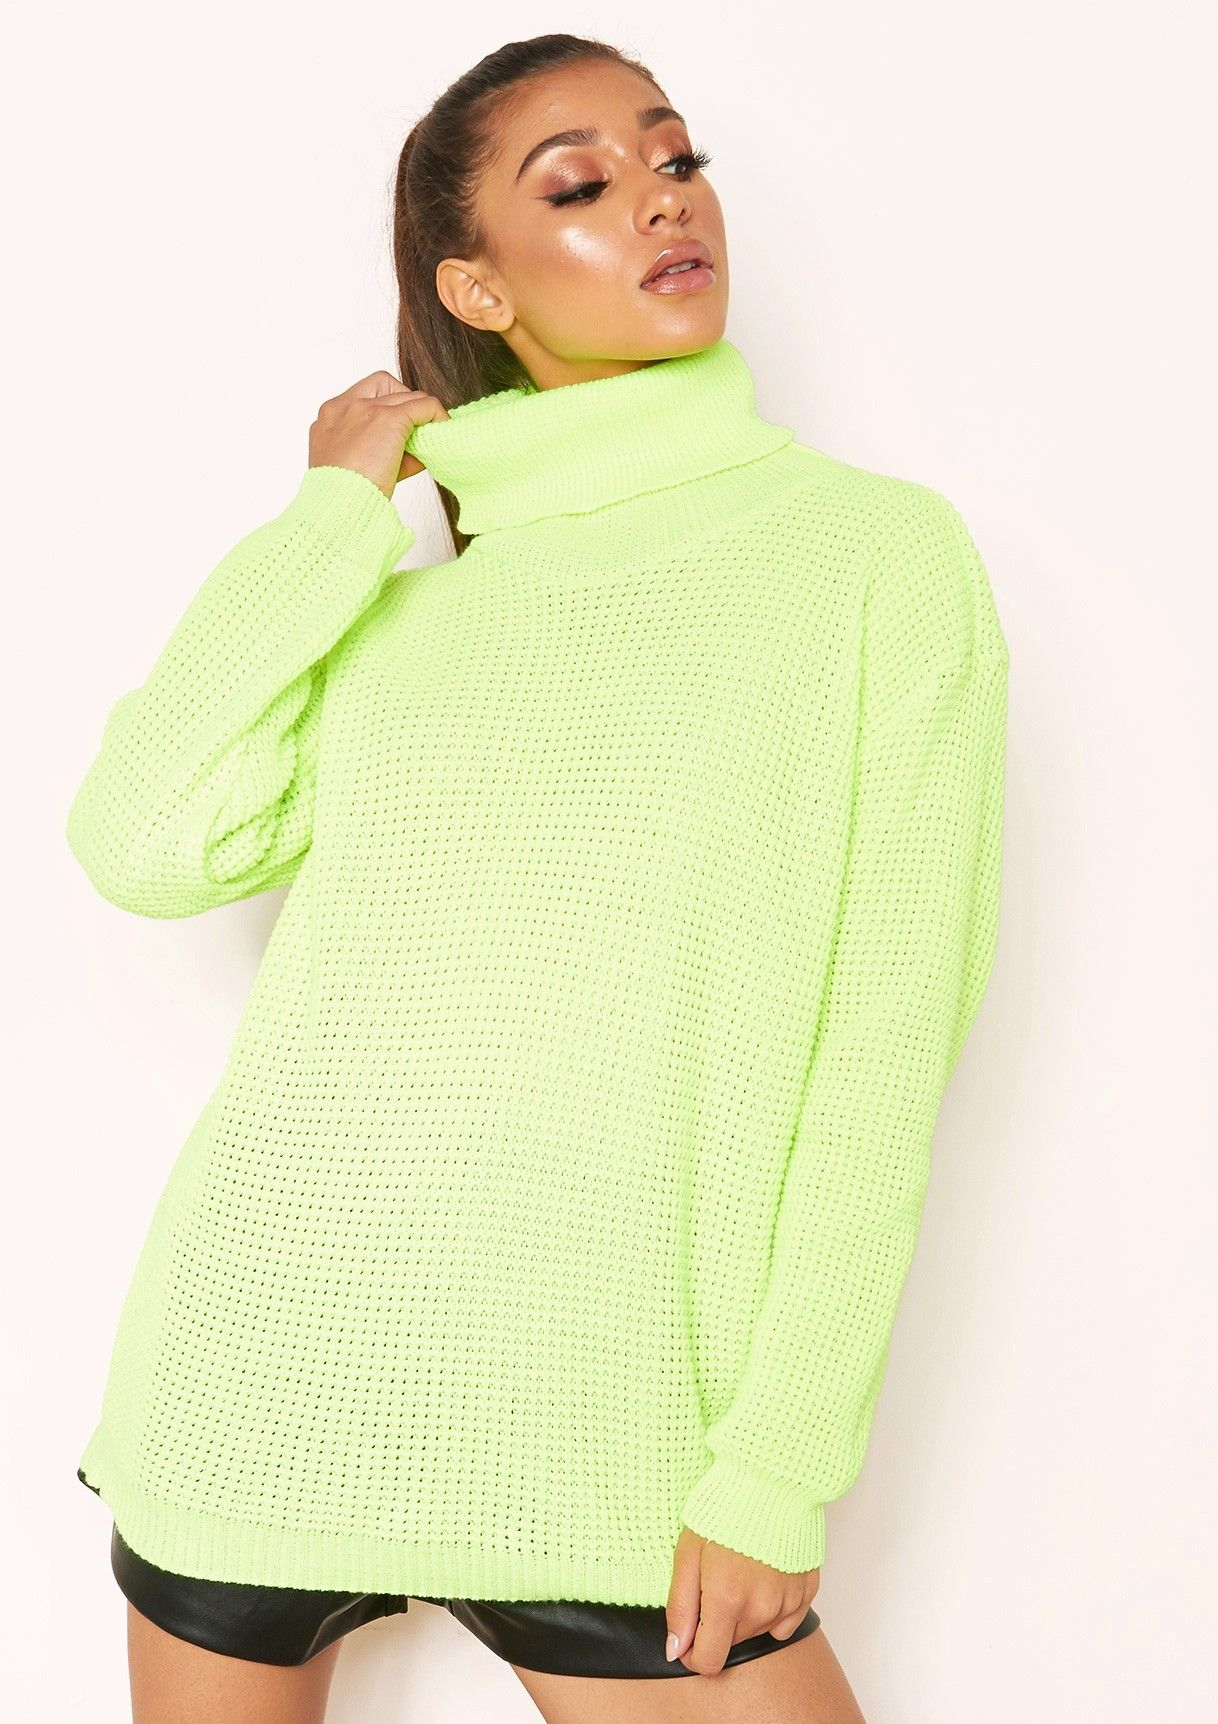 Missyempire - Harper Neon Yellow Knit Roll Neck Jumper 203372034